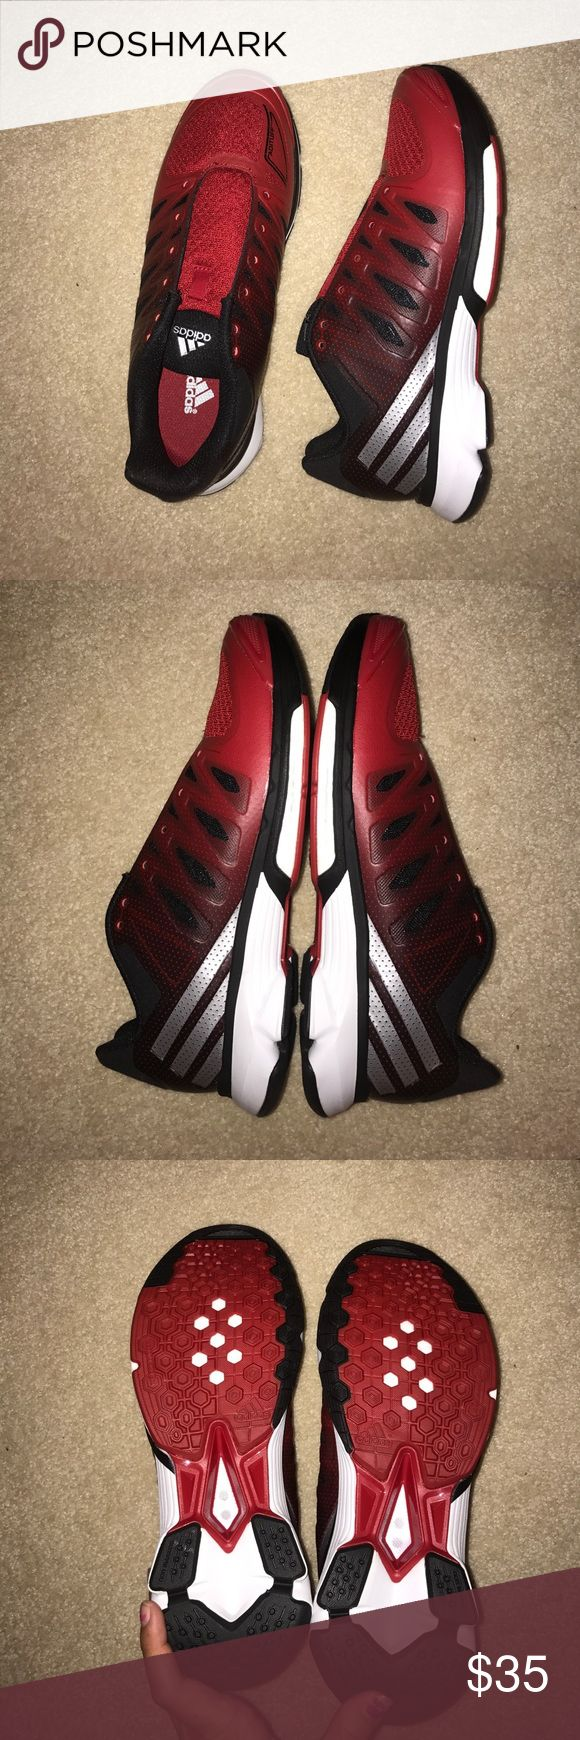 Adidas red volleyball shoes. BRAND NEW Never been worn, red adidas volleyball shoes adidas Shoes Sneakers